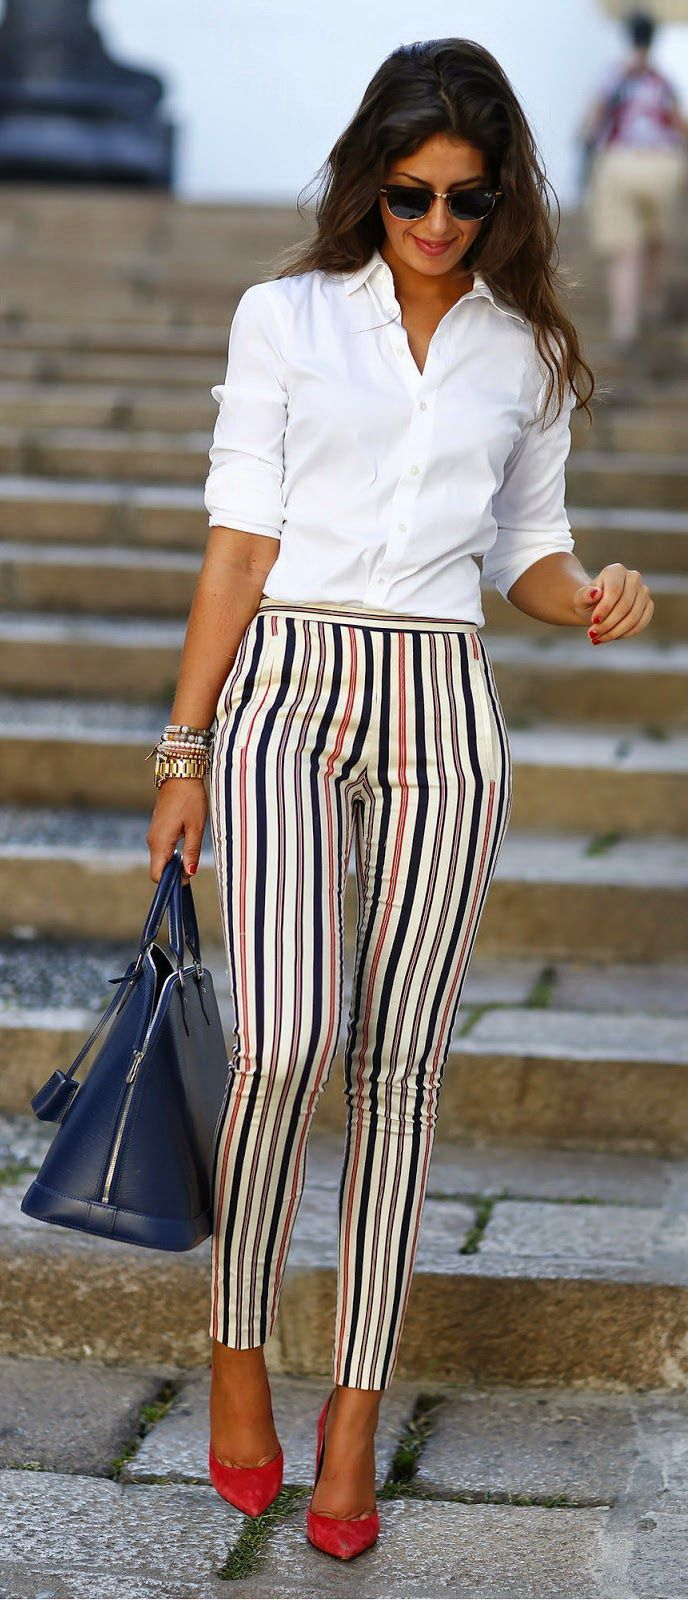 25  Best Ideas about Women's Outfits Summer on Pinterest | Women's ...